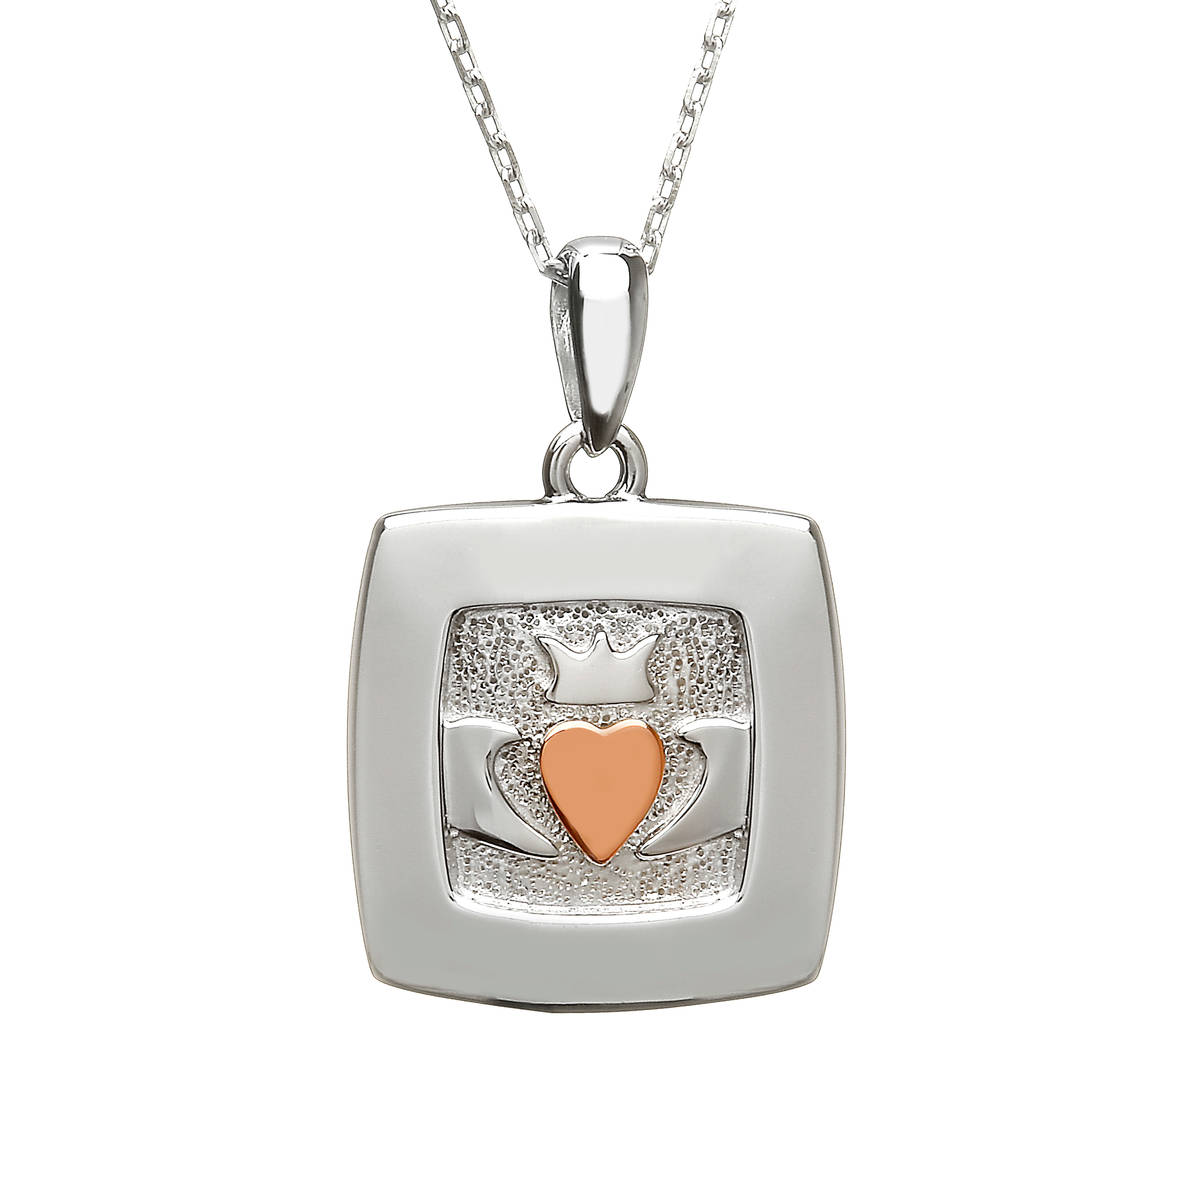 silver and rare Irish rose gold square Claddagh pendant with heart made from gold.